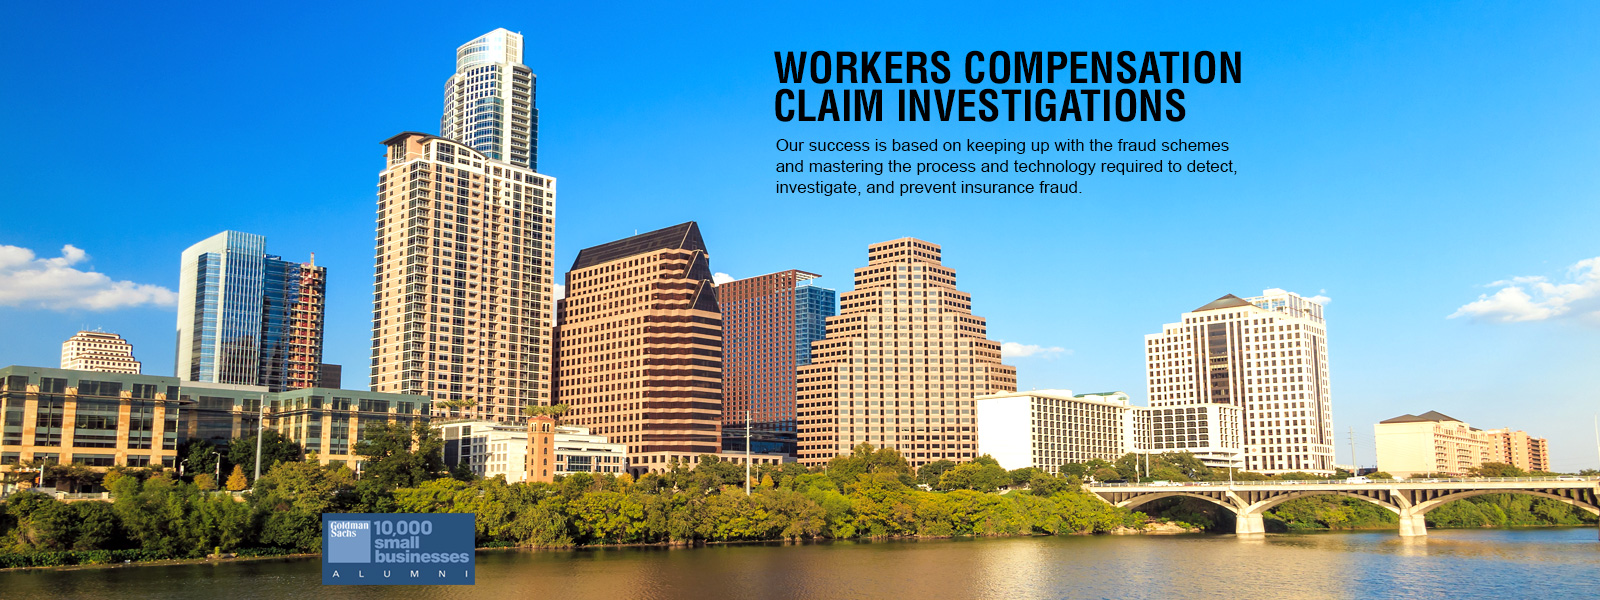 Workers Compensation Claim Investigations